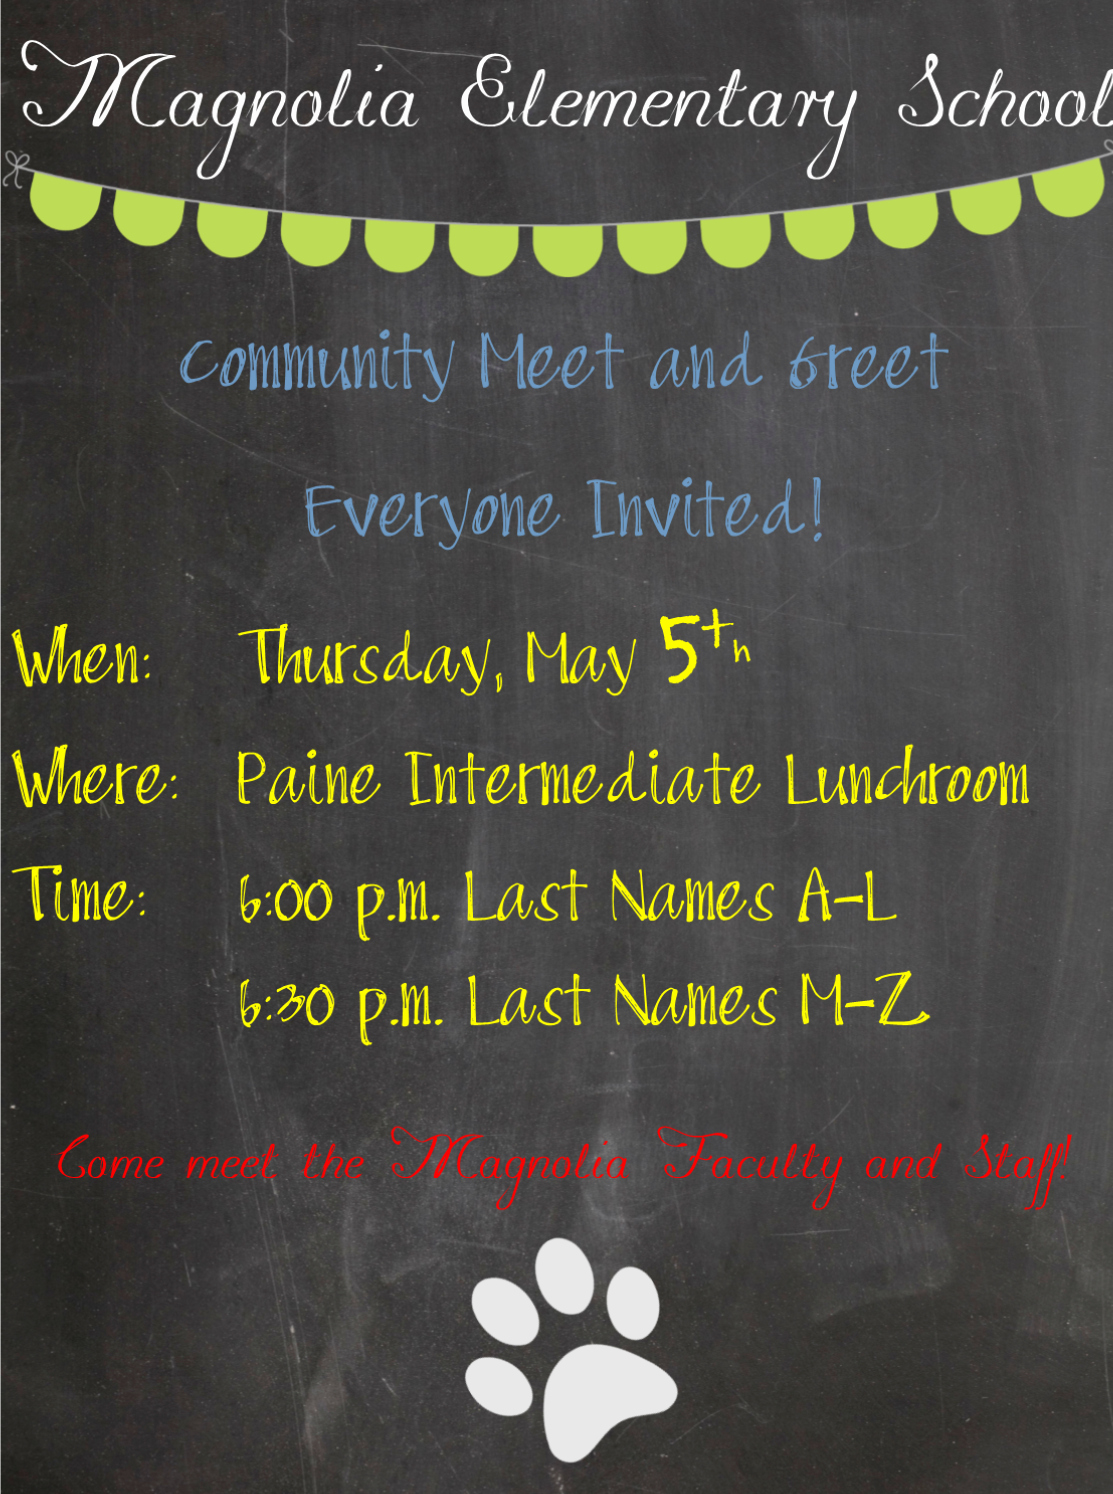 Meet and Greet Invitation Luxury Paine Intermediate Parent Updates Magnolia Elementary